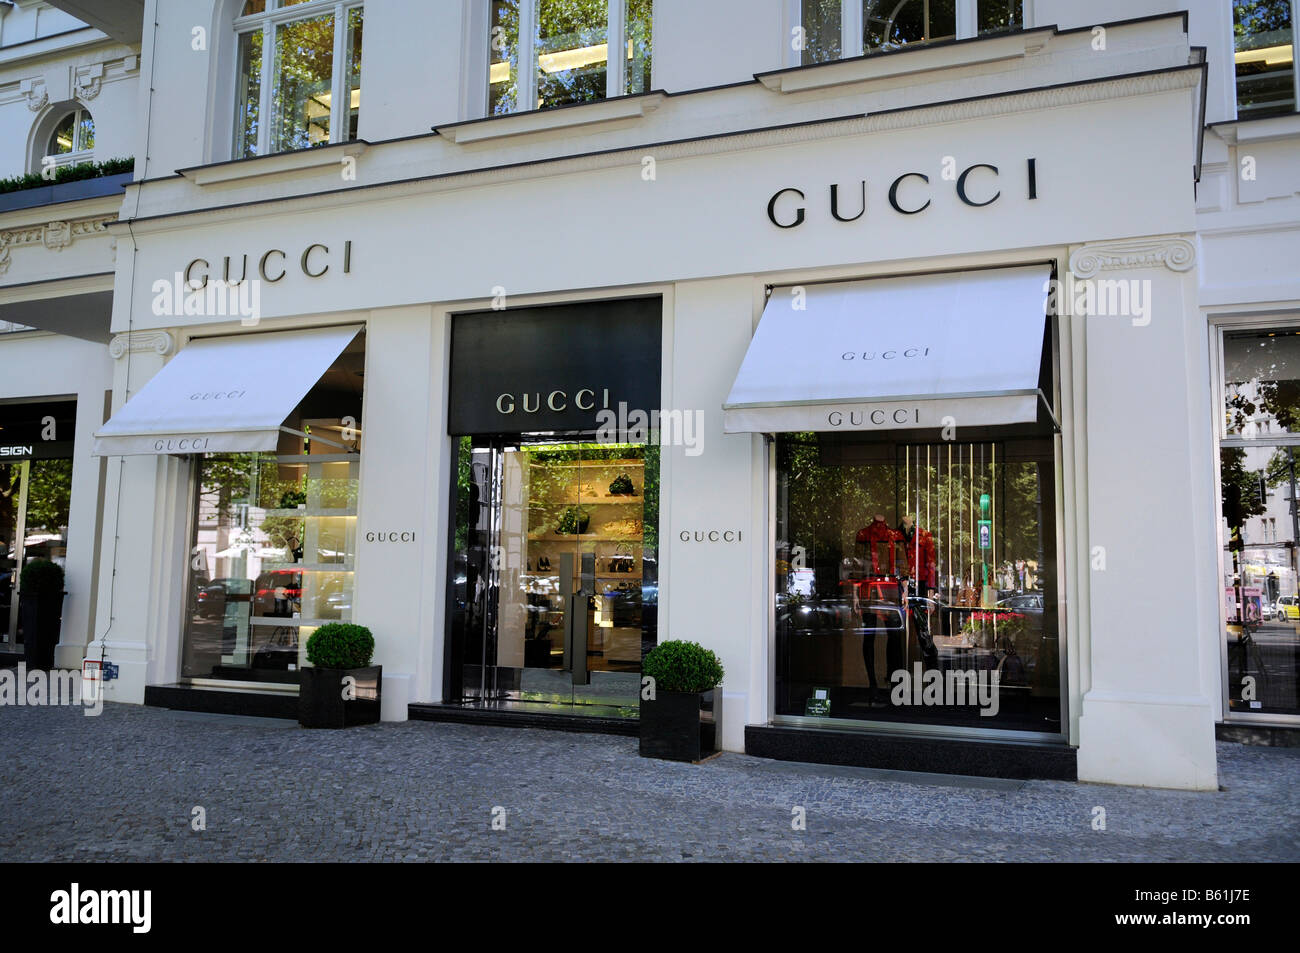 gucci store auf dem kudamm berlin stockfoto bild 20934578 alamy. Black Bedroom Furniture Sets. Home Design Ideas